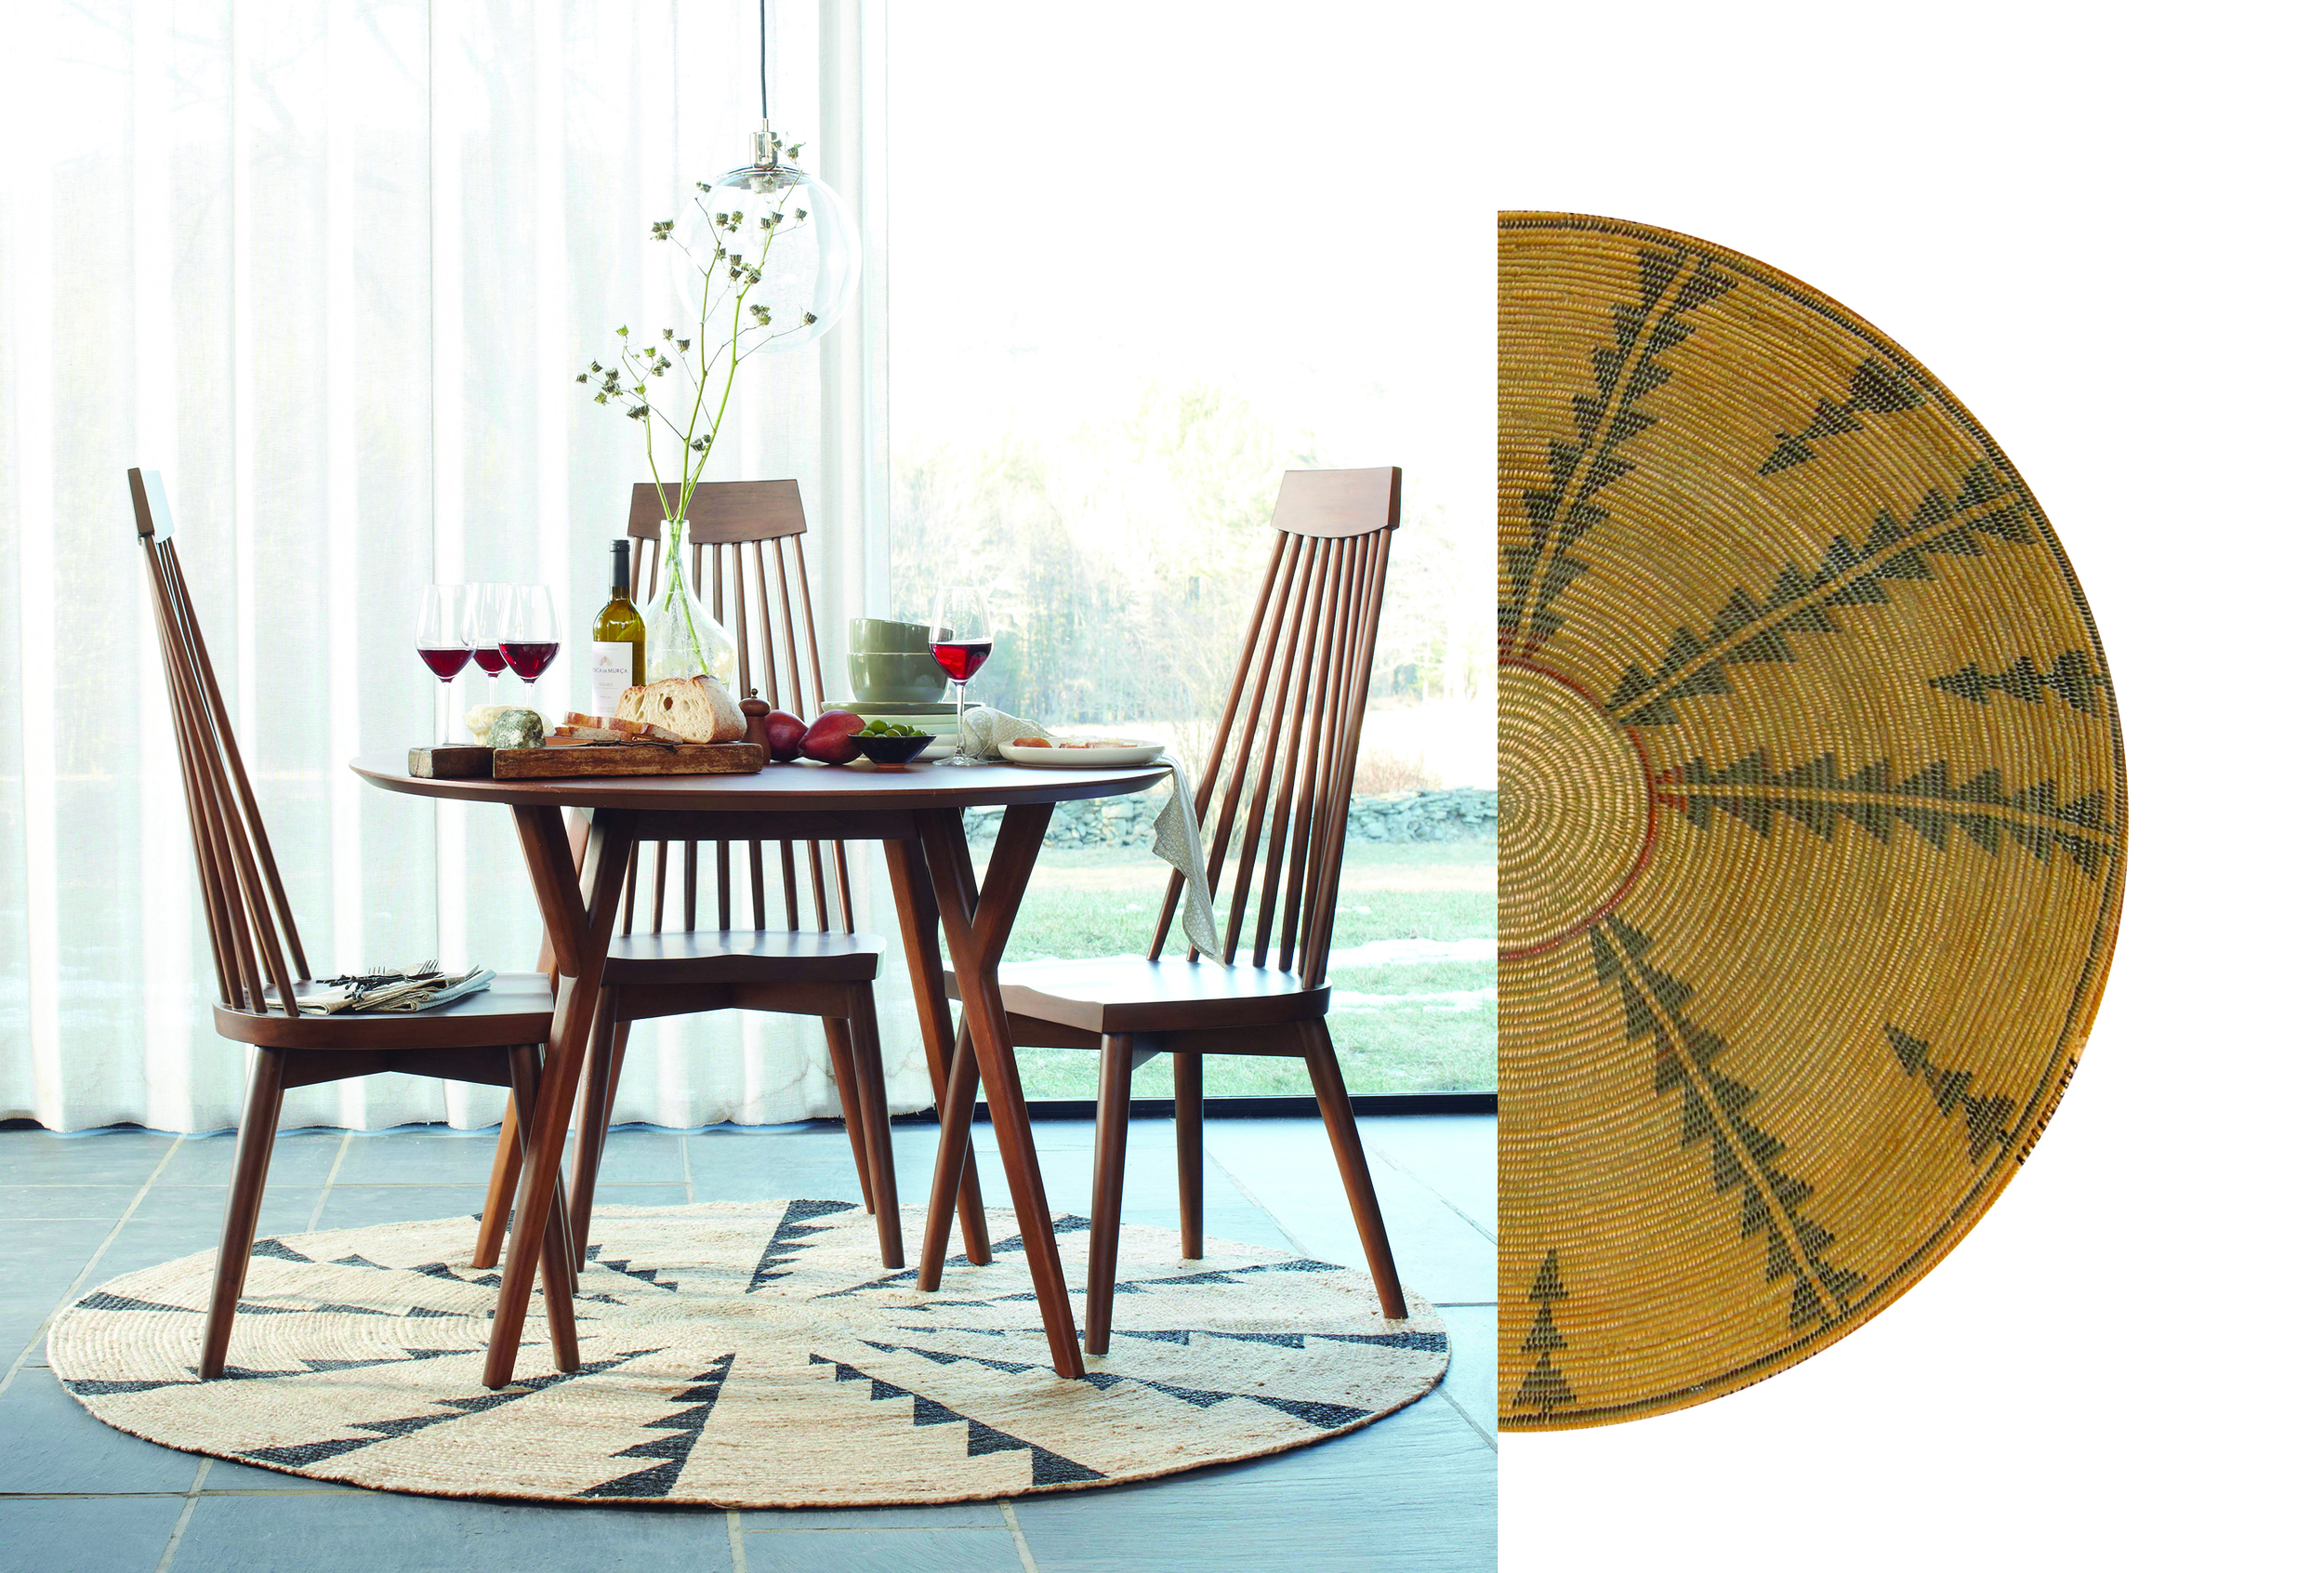 A West Elm Rug (L) and the Native American Basket(R) that inspired it.